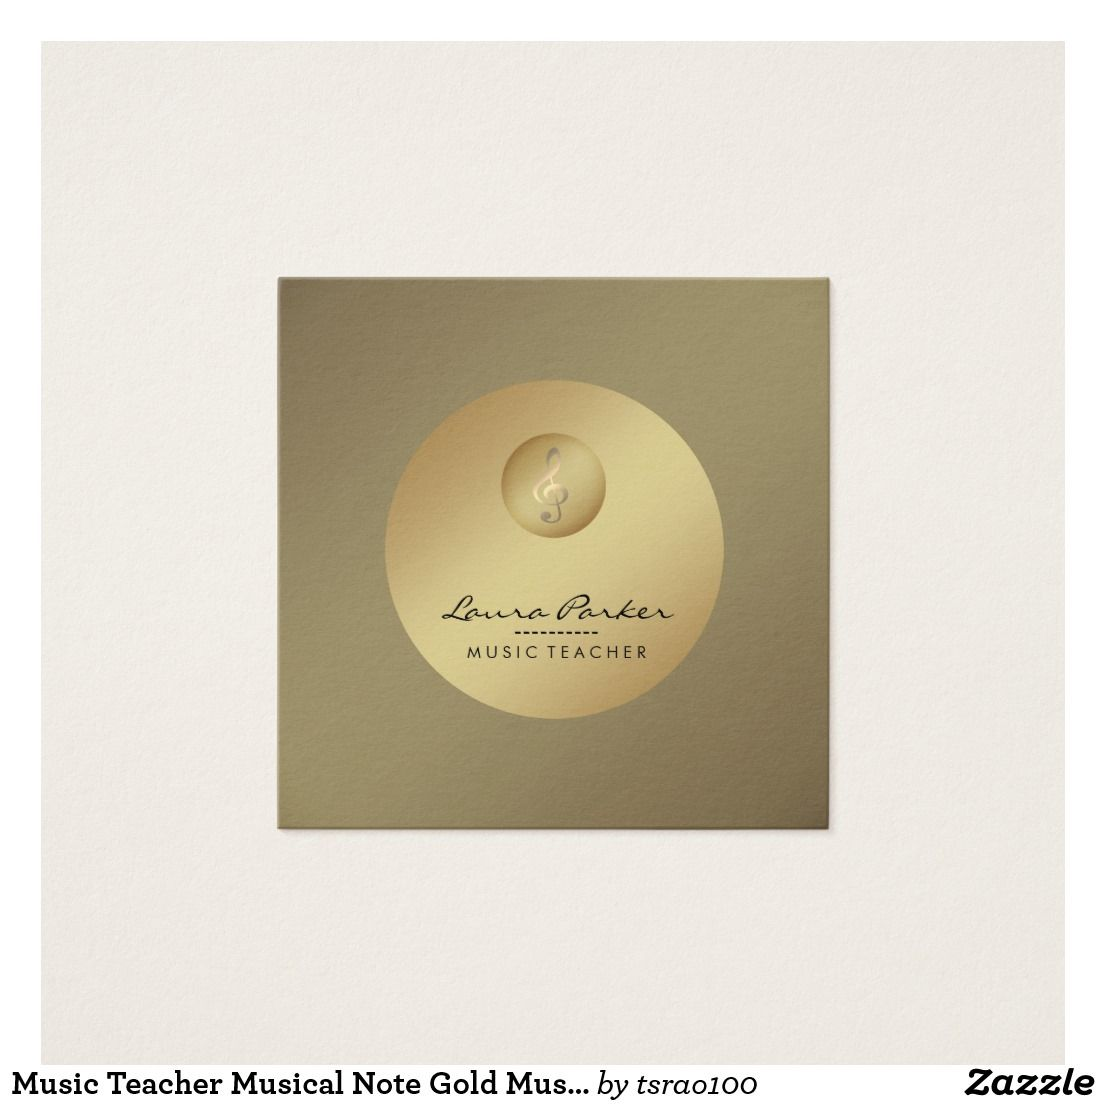 Music Teacher Musical Note Gold Musician Square Business Card ...